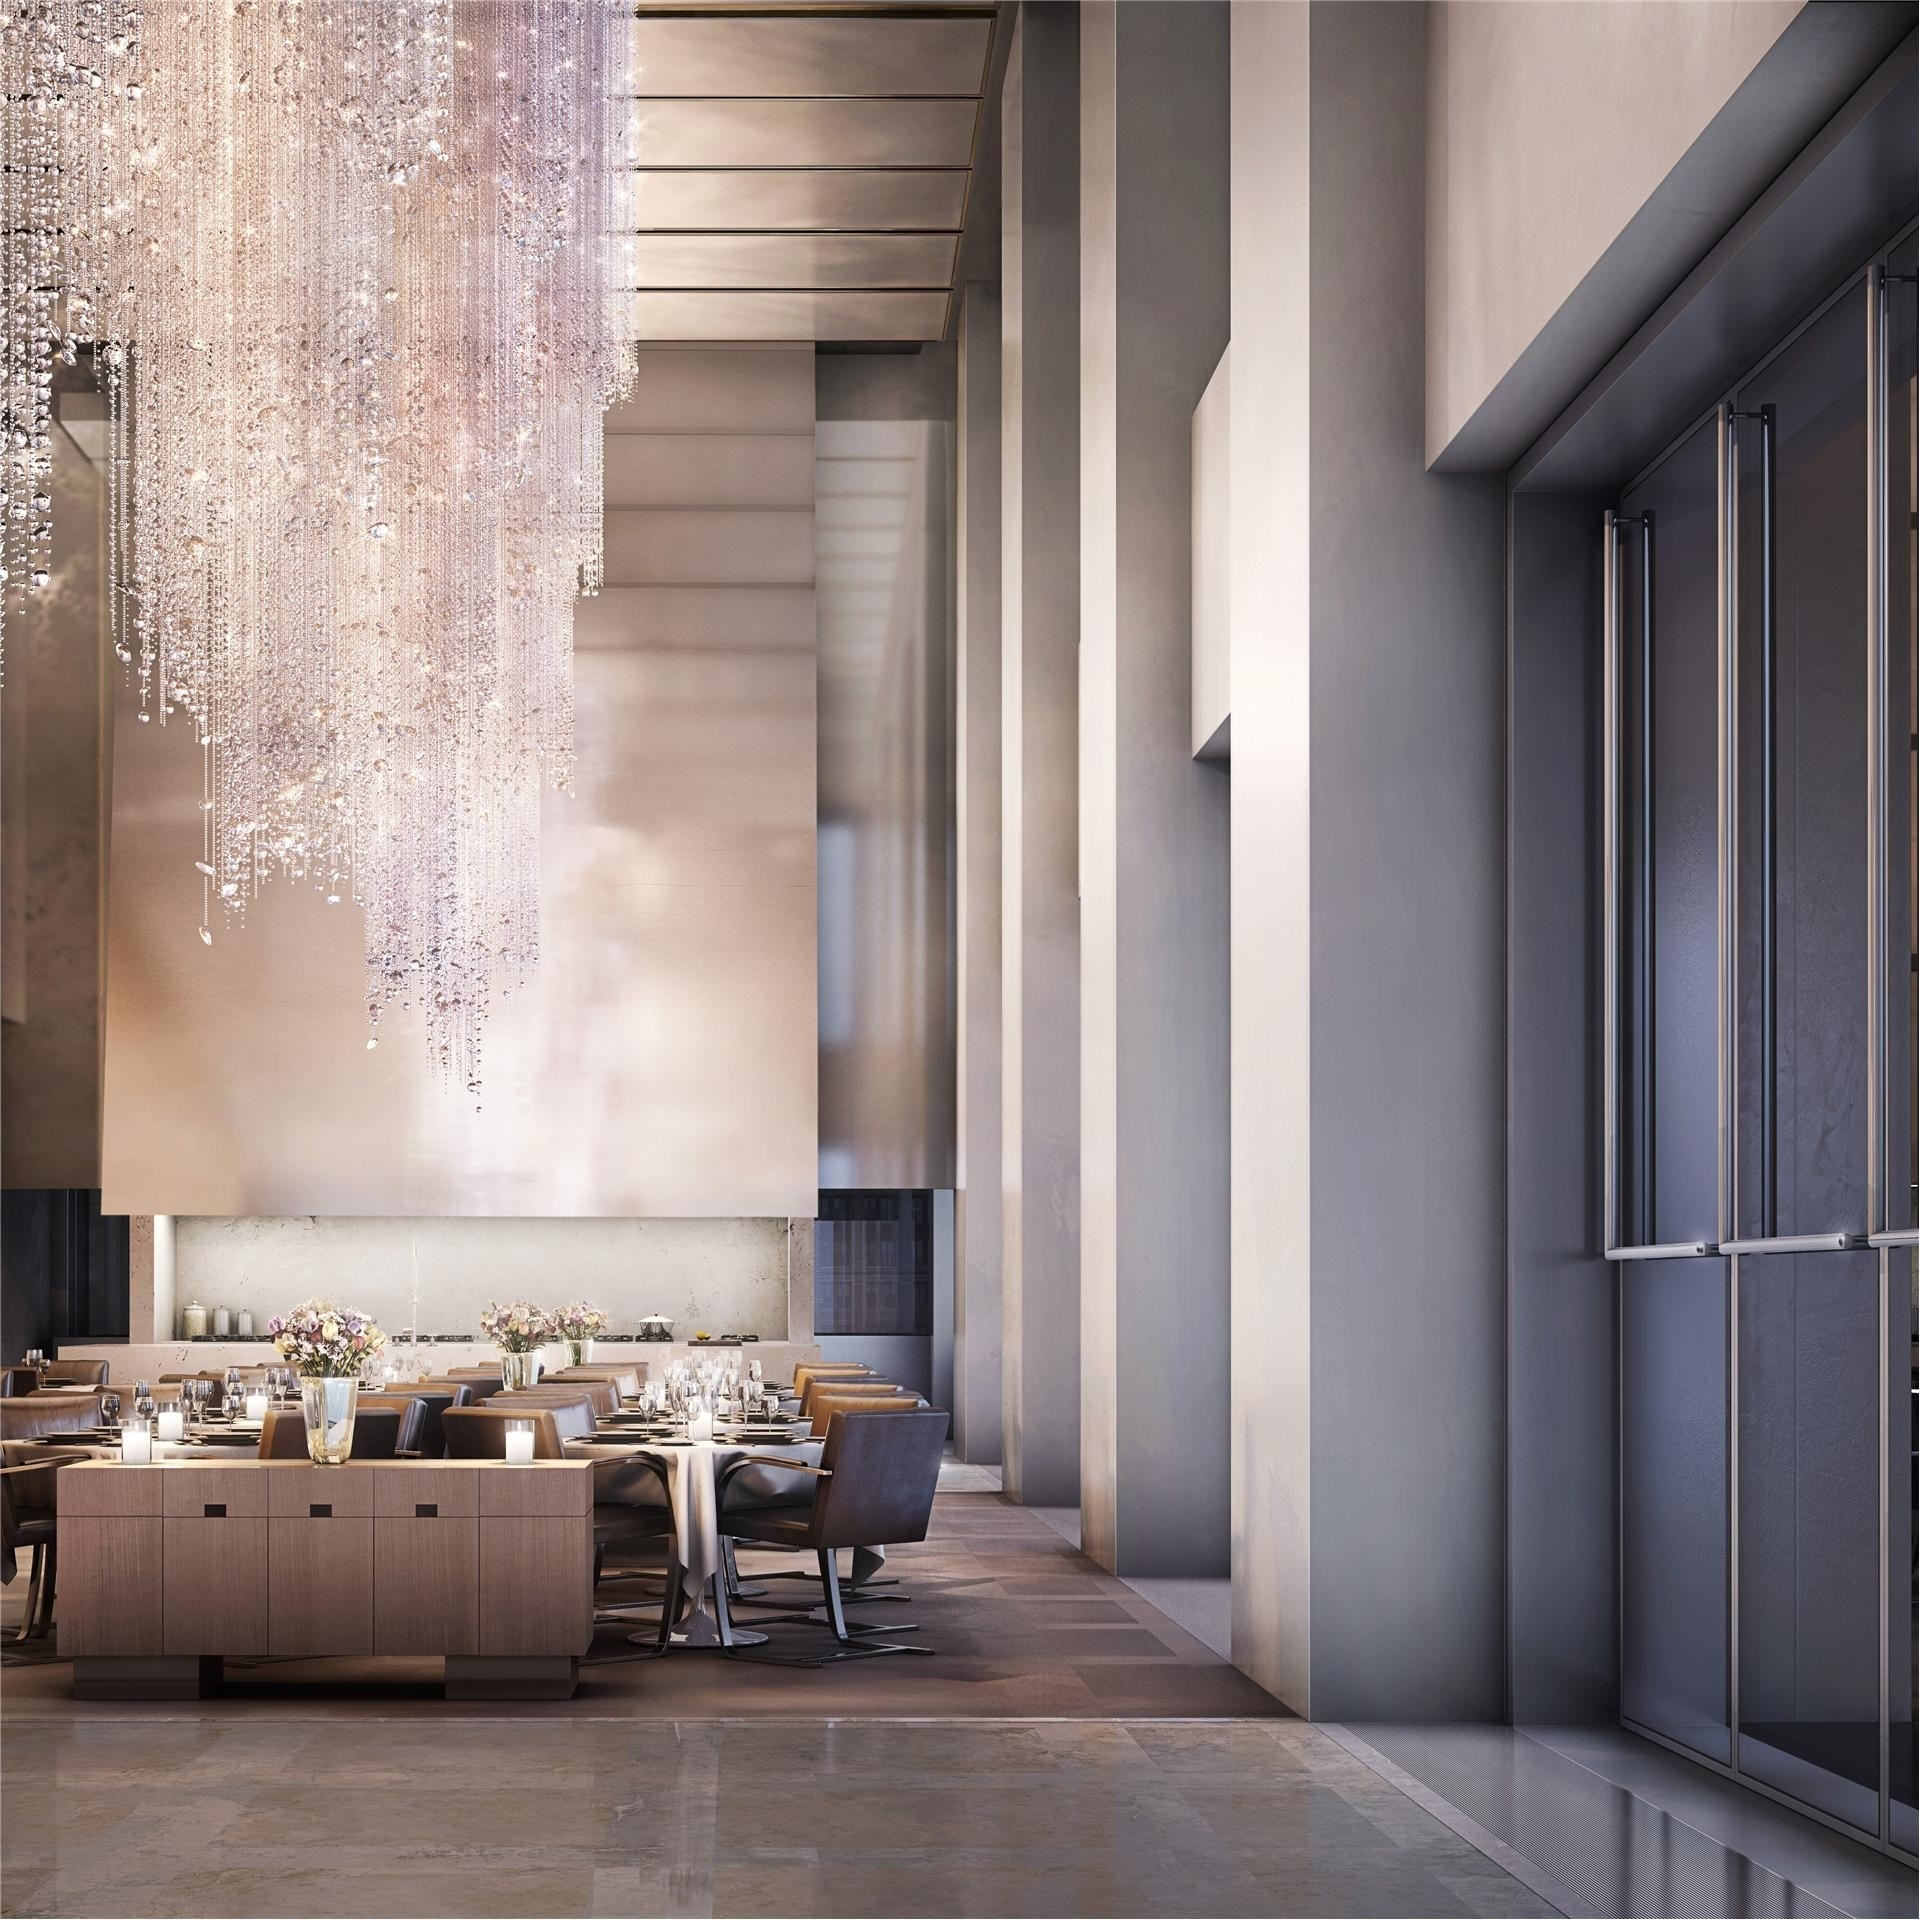 20. Condominiums for Sale at 432 Park Avenue, 29E Midtown East, New York, NY 10022